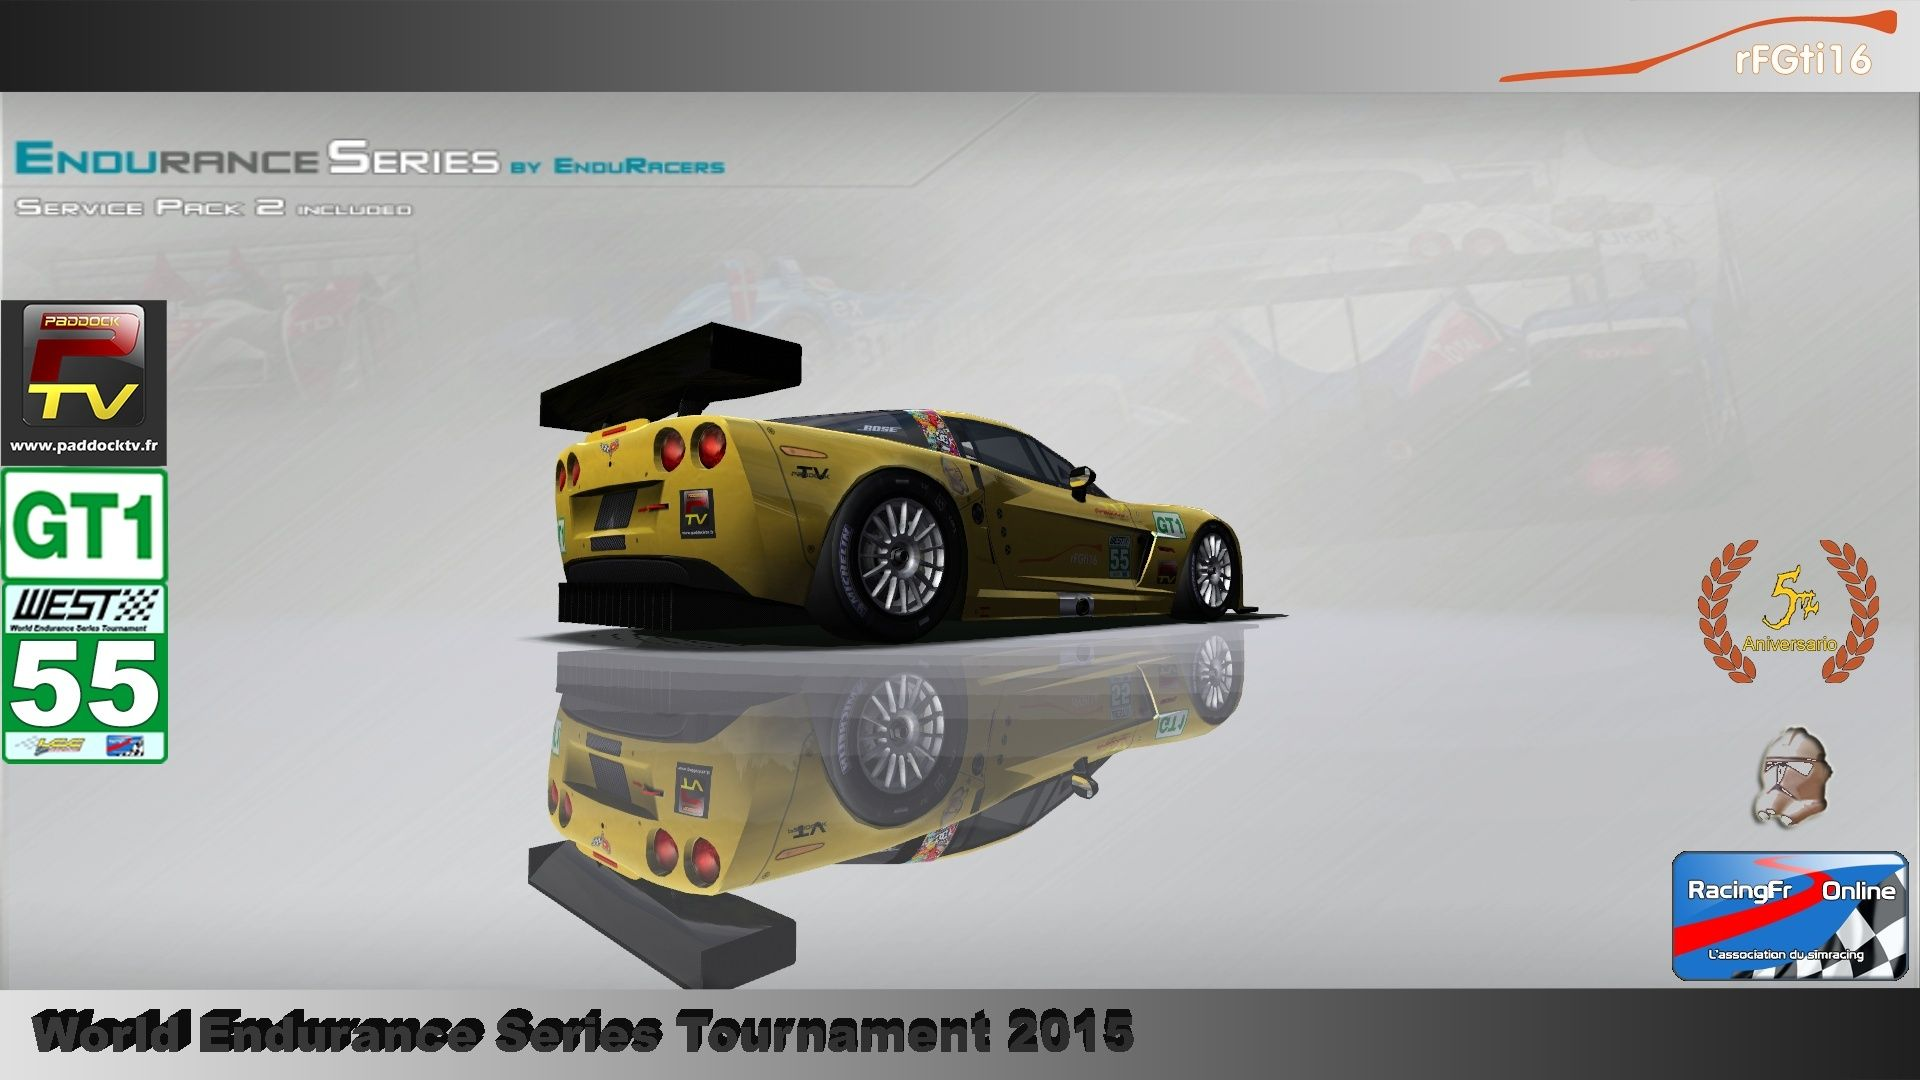 WEST 2015 Endurance Series championship P2/GT1 00710